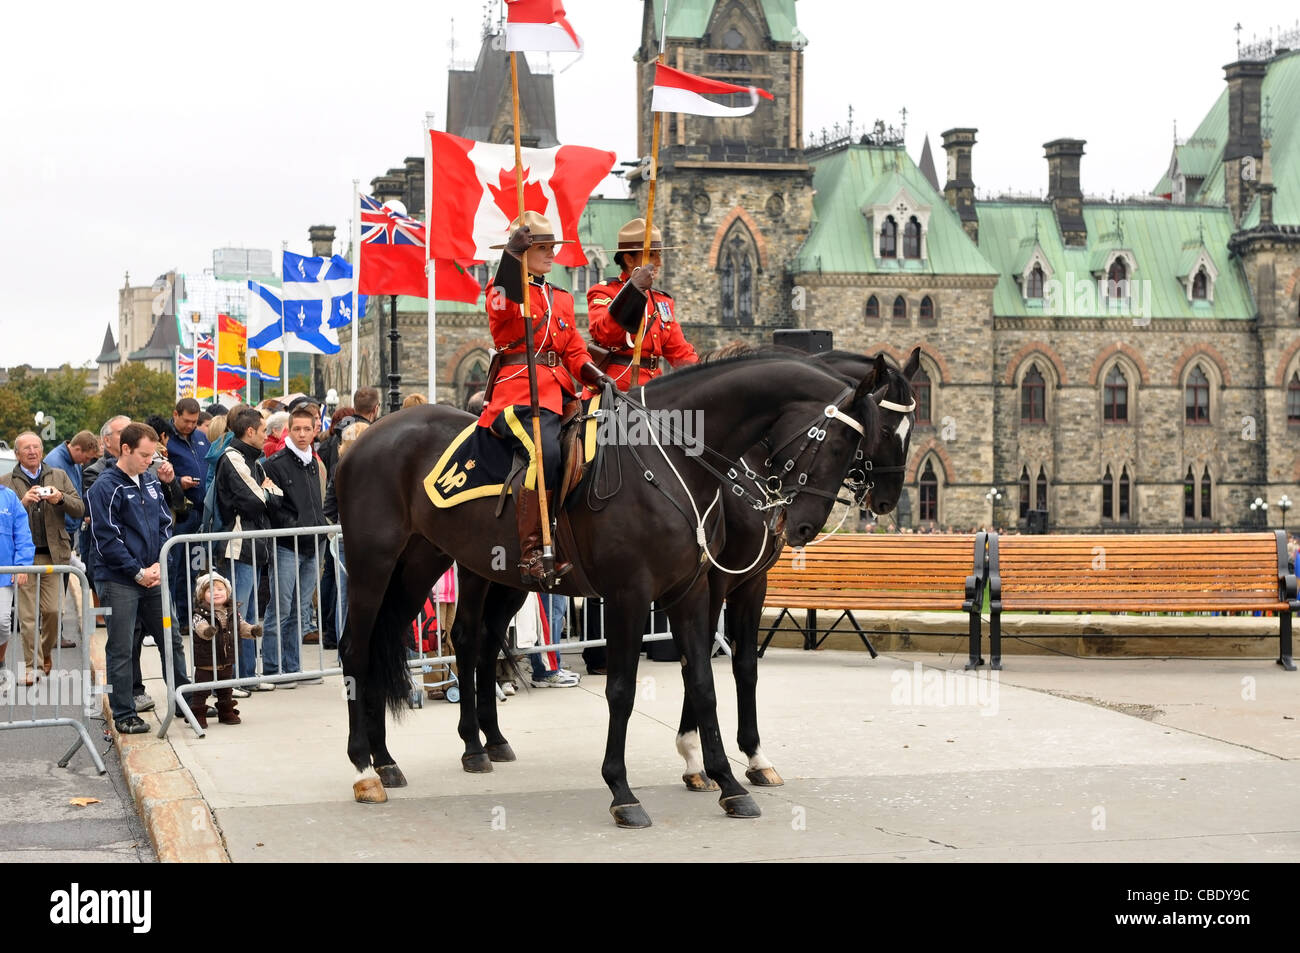 Royal Canadian Mounted Police On Duty At The National